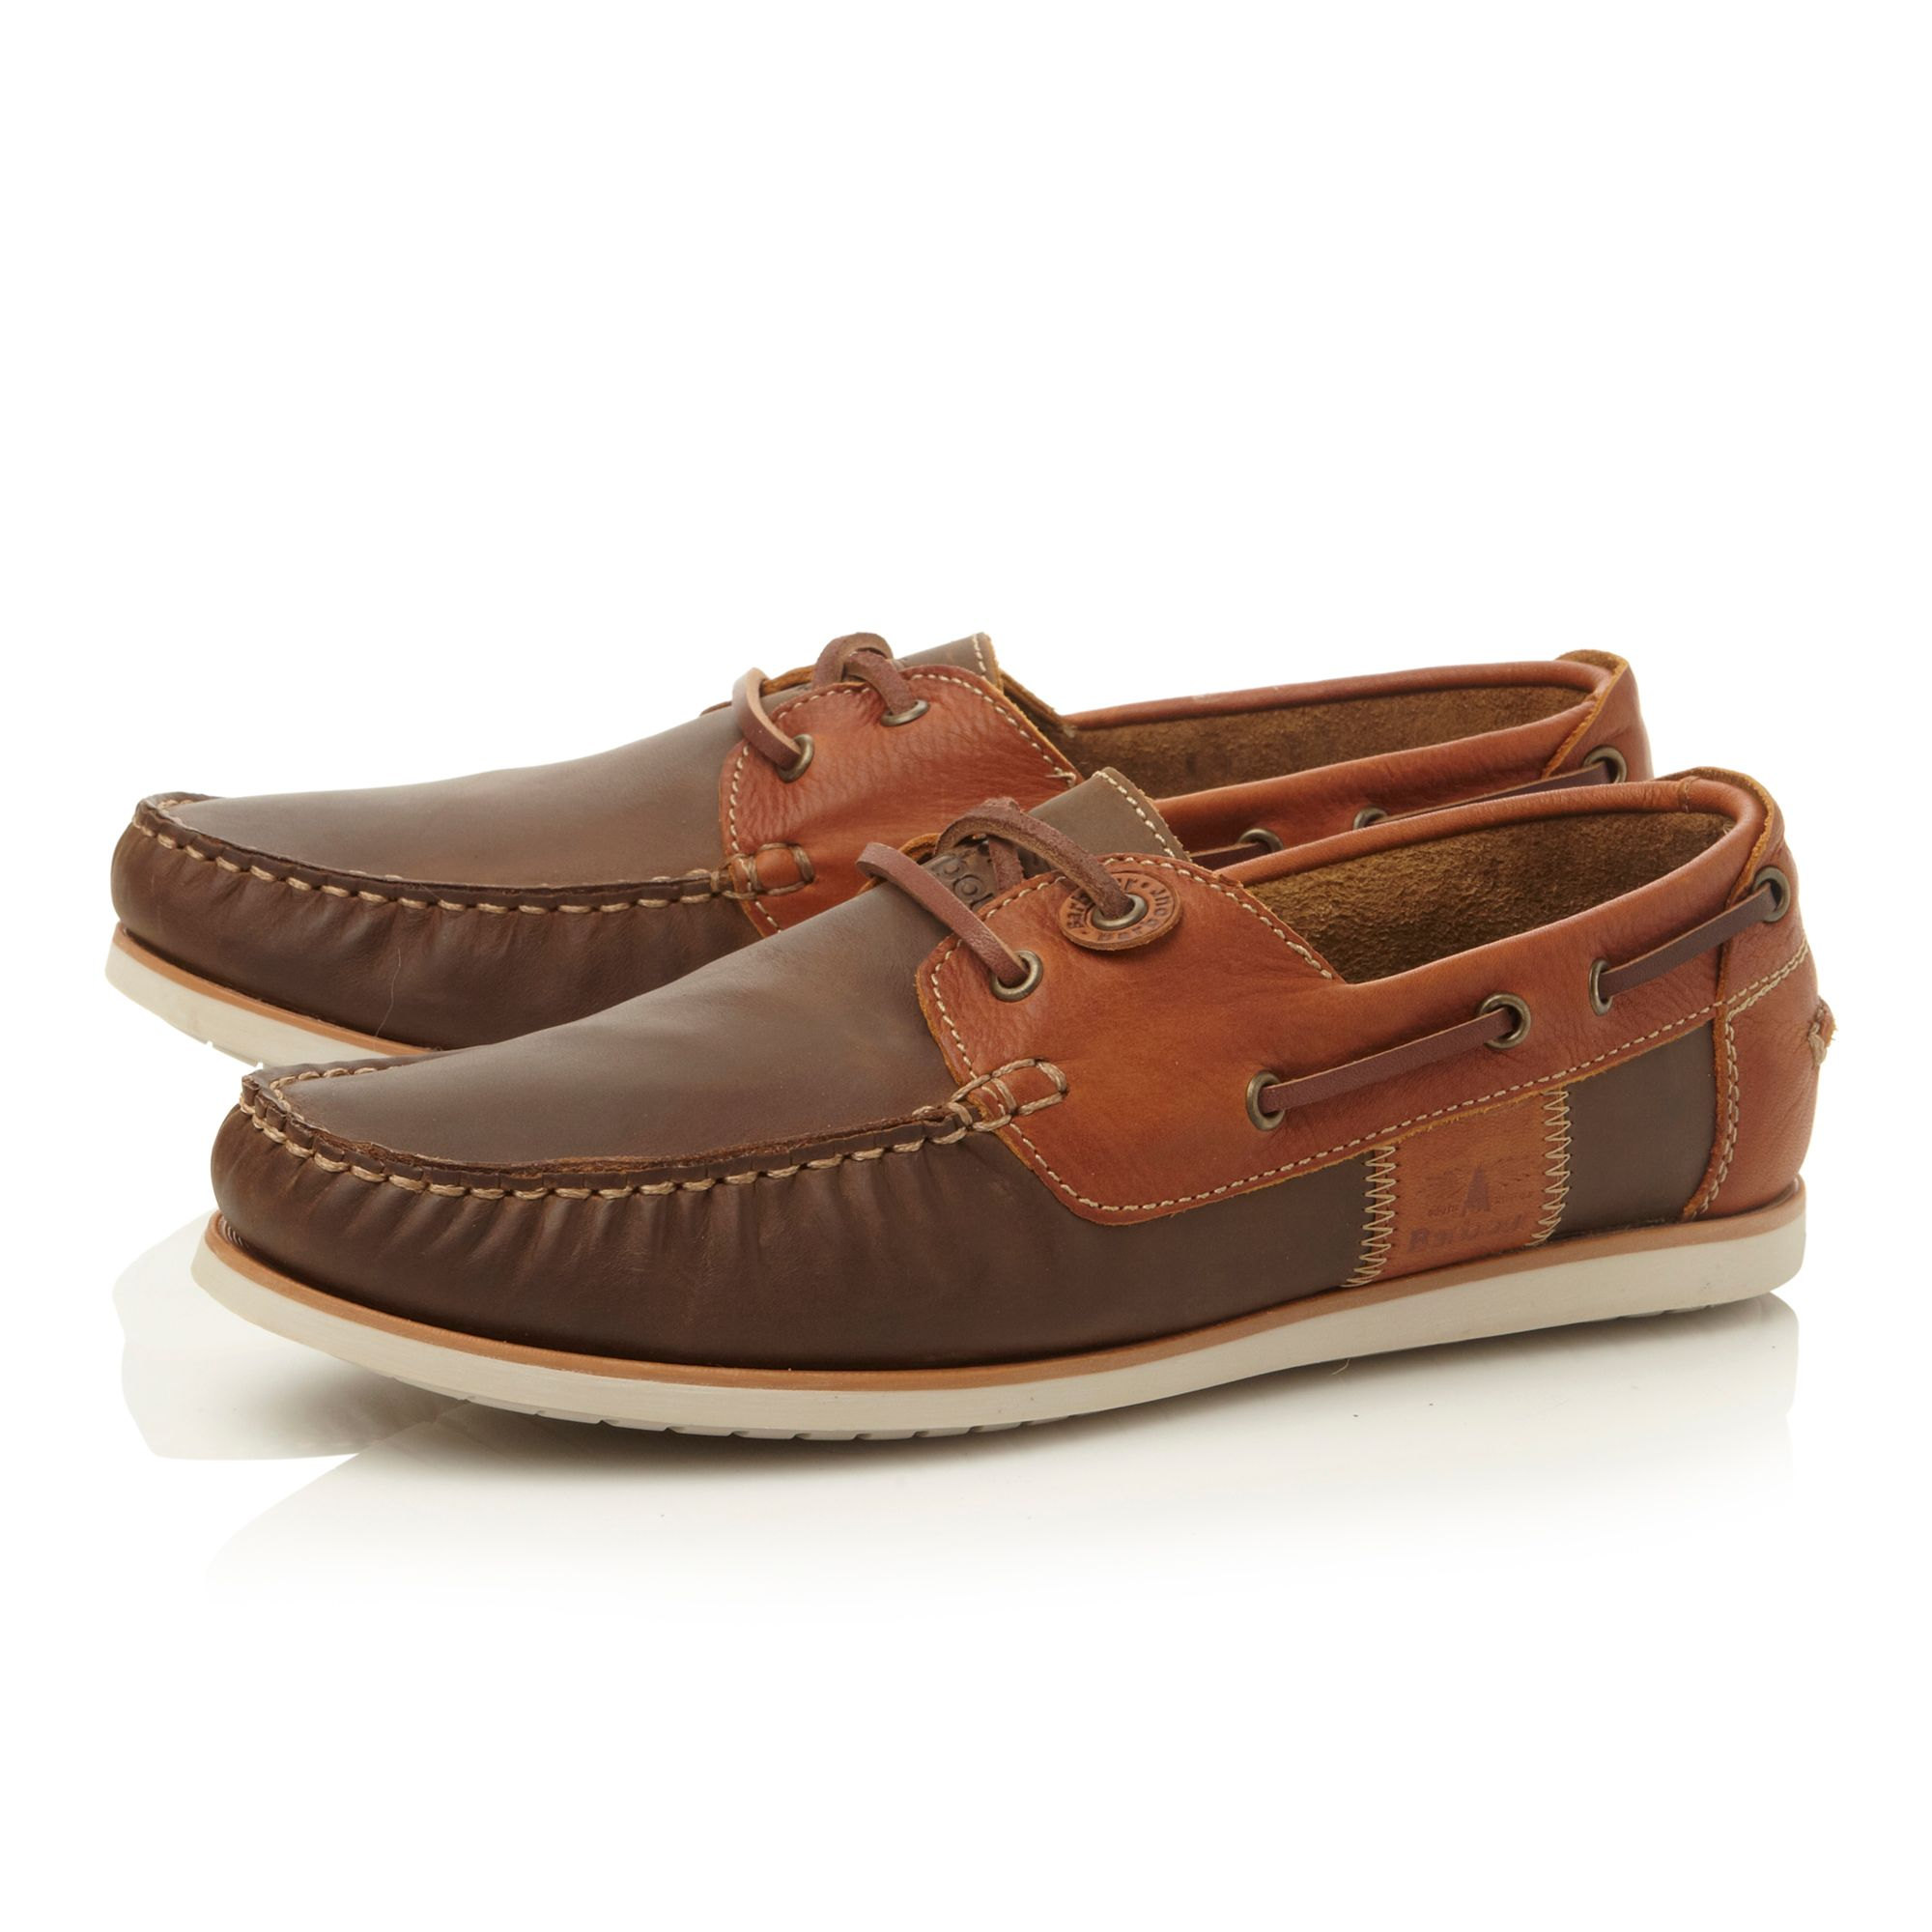 Flinders lace up contrast eyelet boat shoes